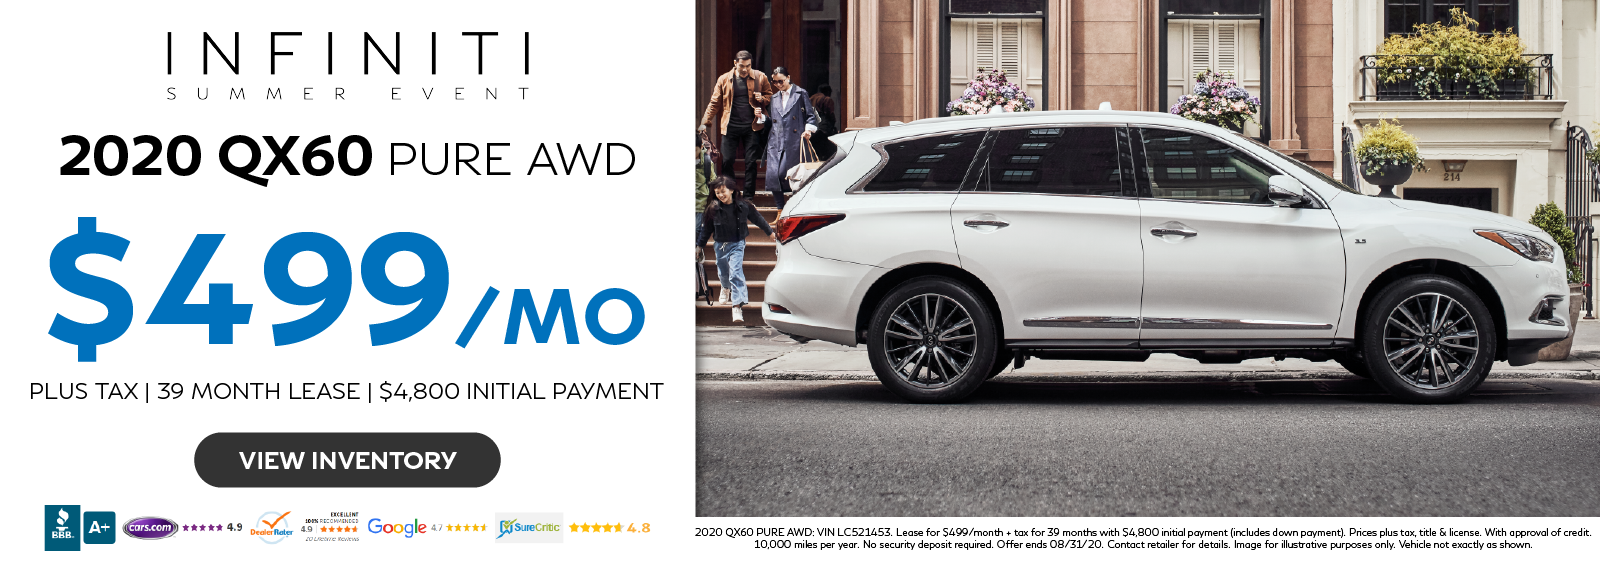 Lease the 2020 QX60 PURE AWD for $499 per month for 39 months. Click to view inventory.